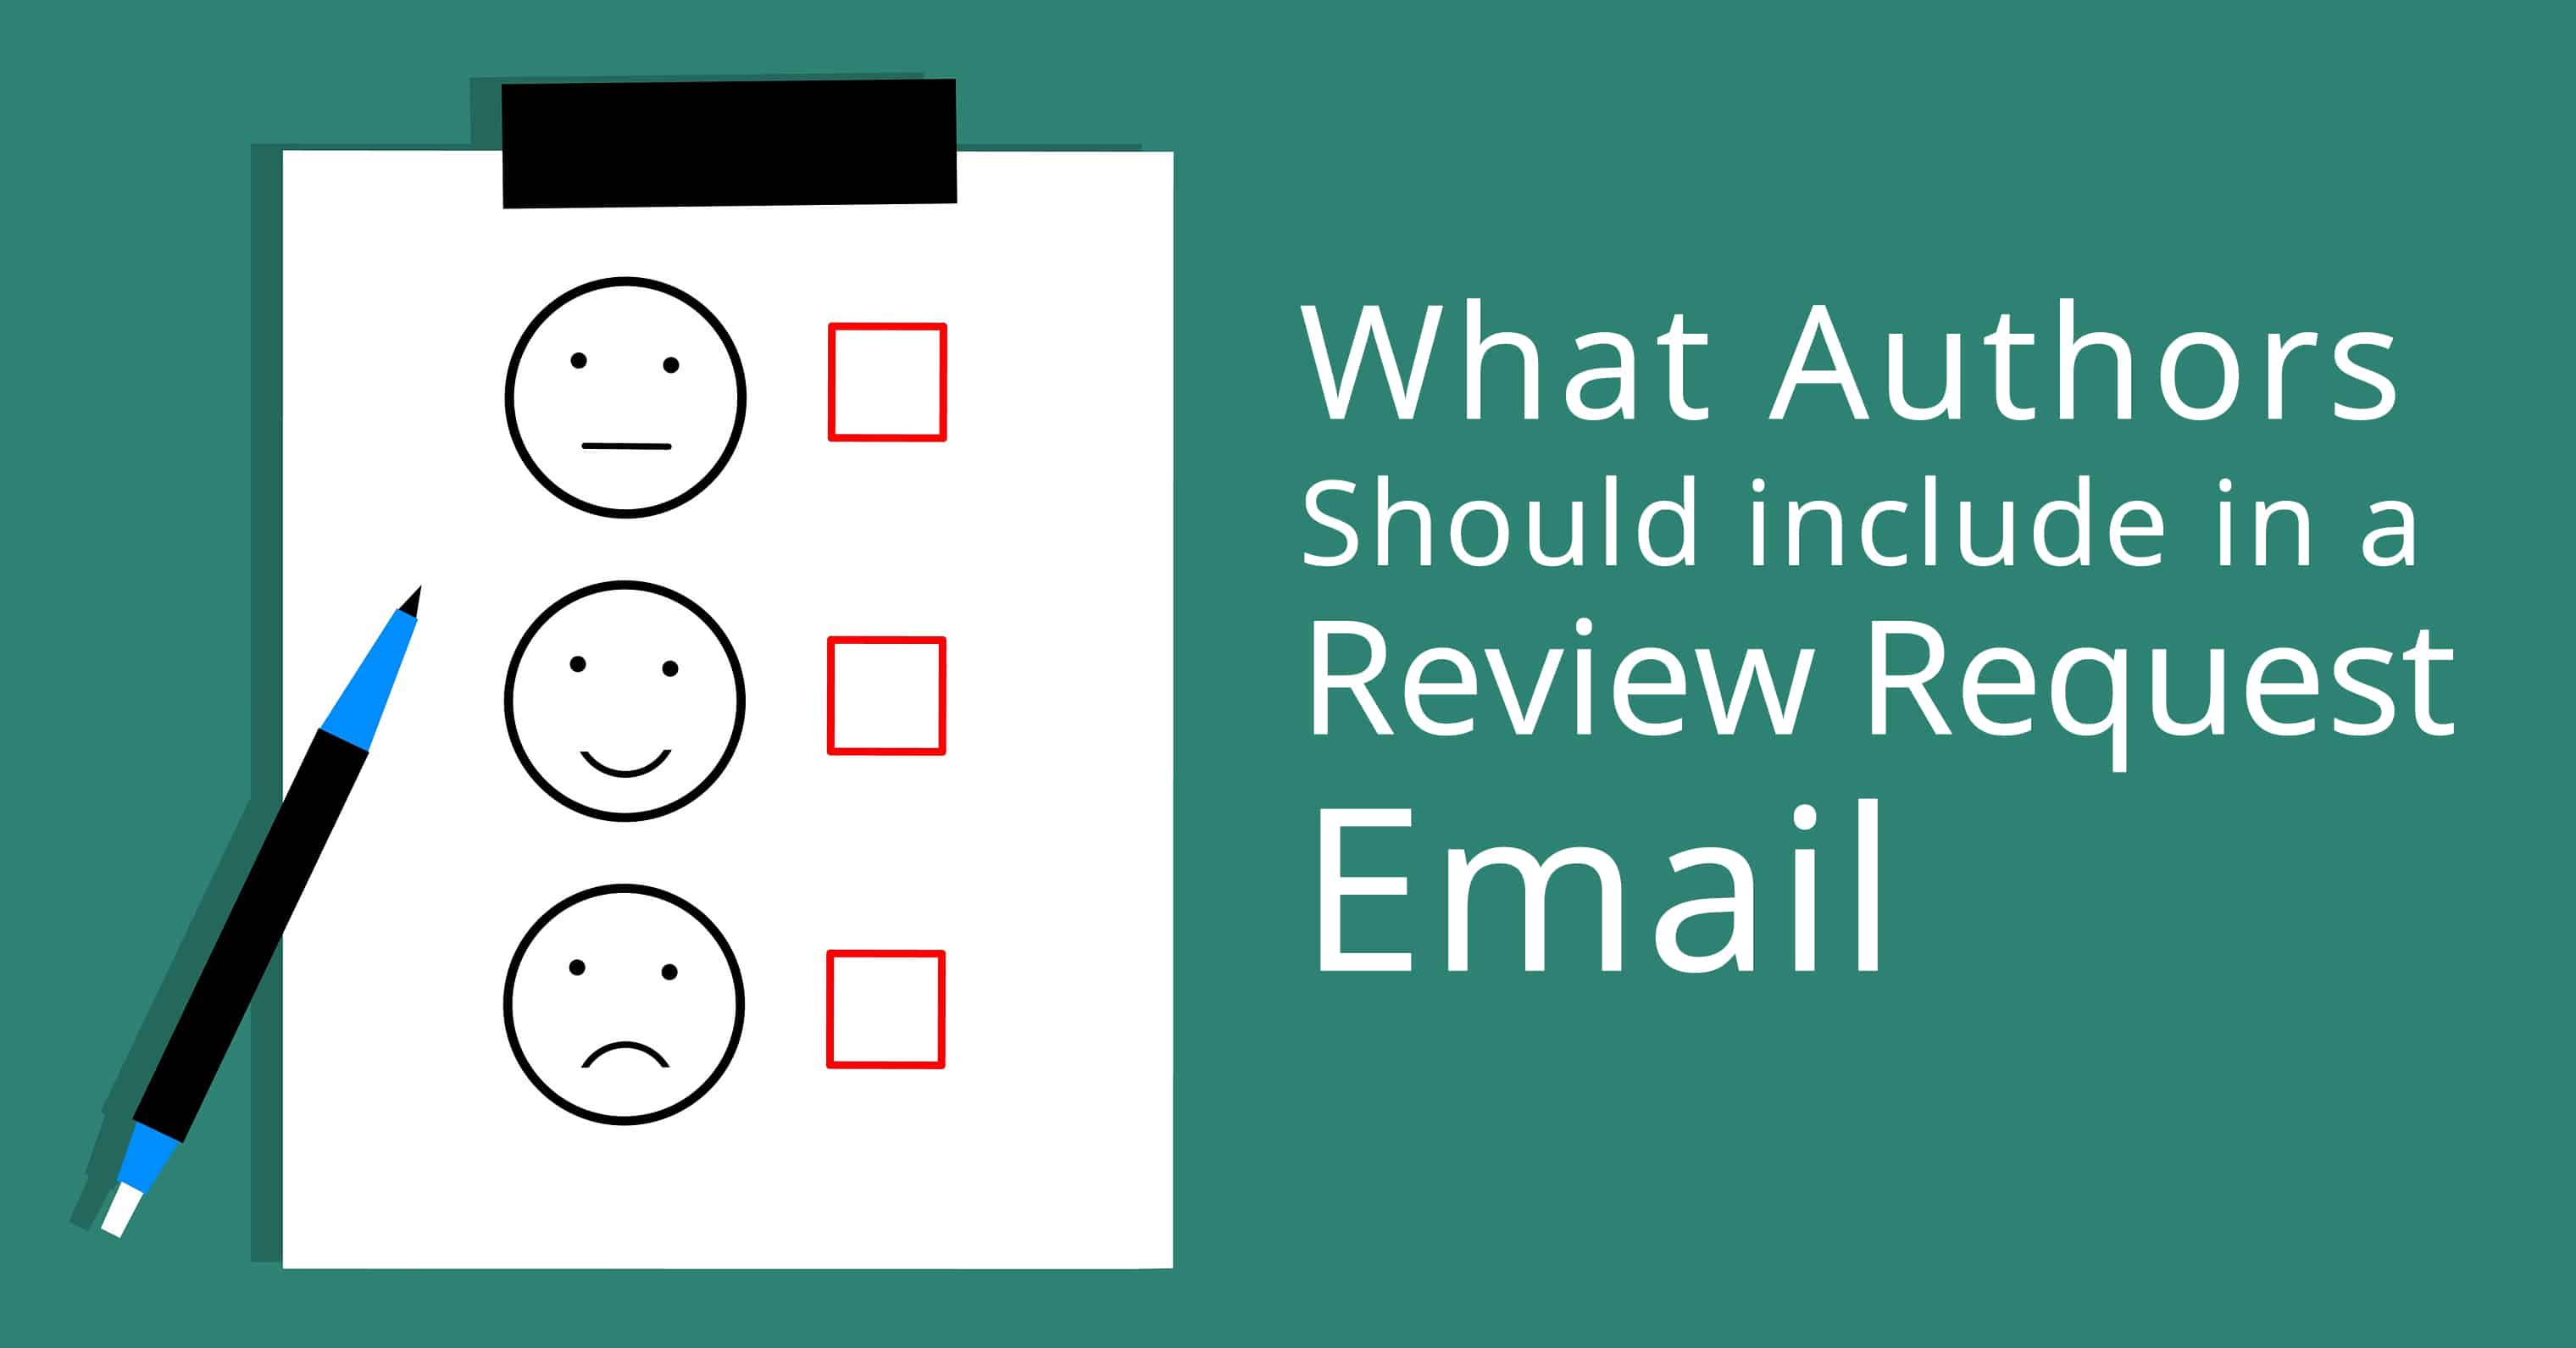 What Authors Should include in a Review Request Email